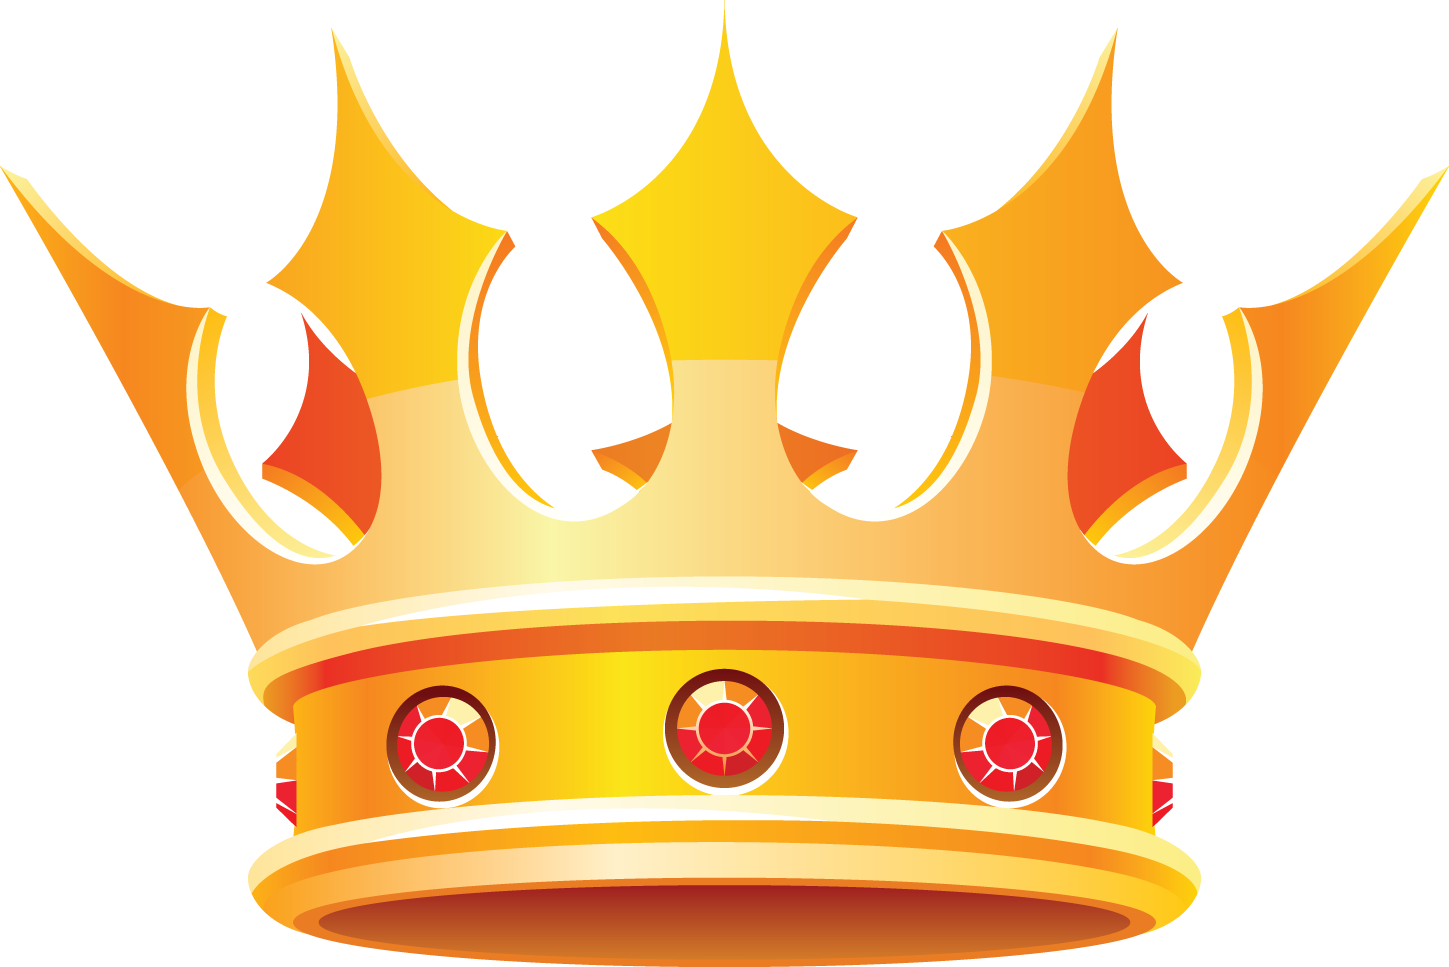 Pageant crown clipart clip art free library Queen Crown Clipart at GetDrawings.com | Free for personal use Queen ... clip art free library